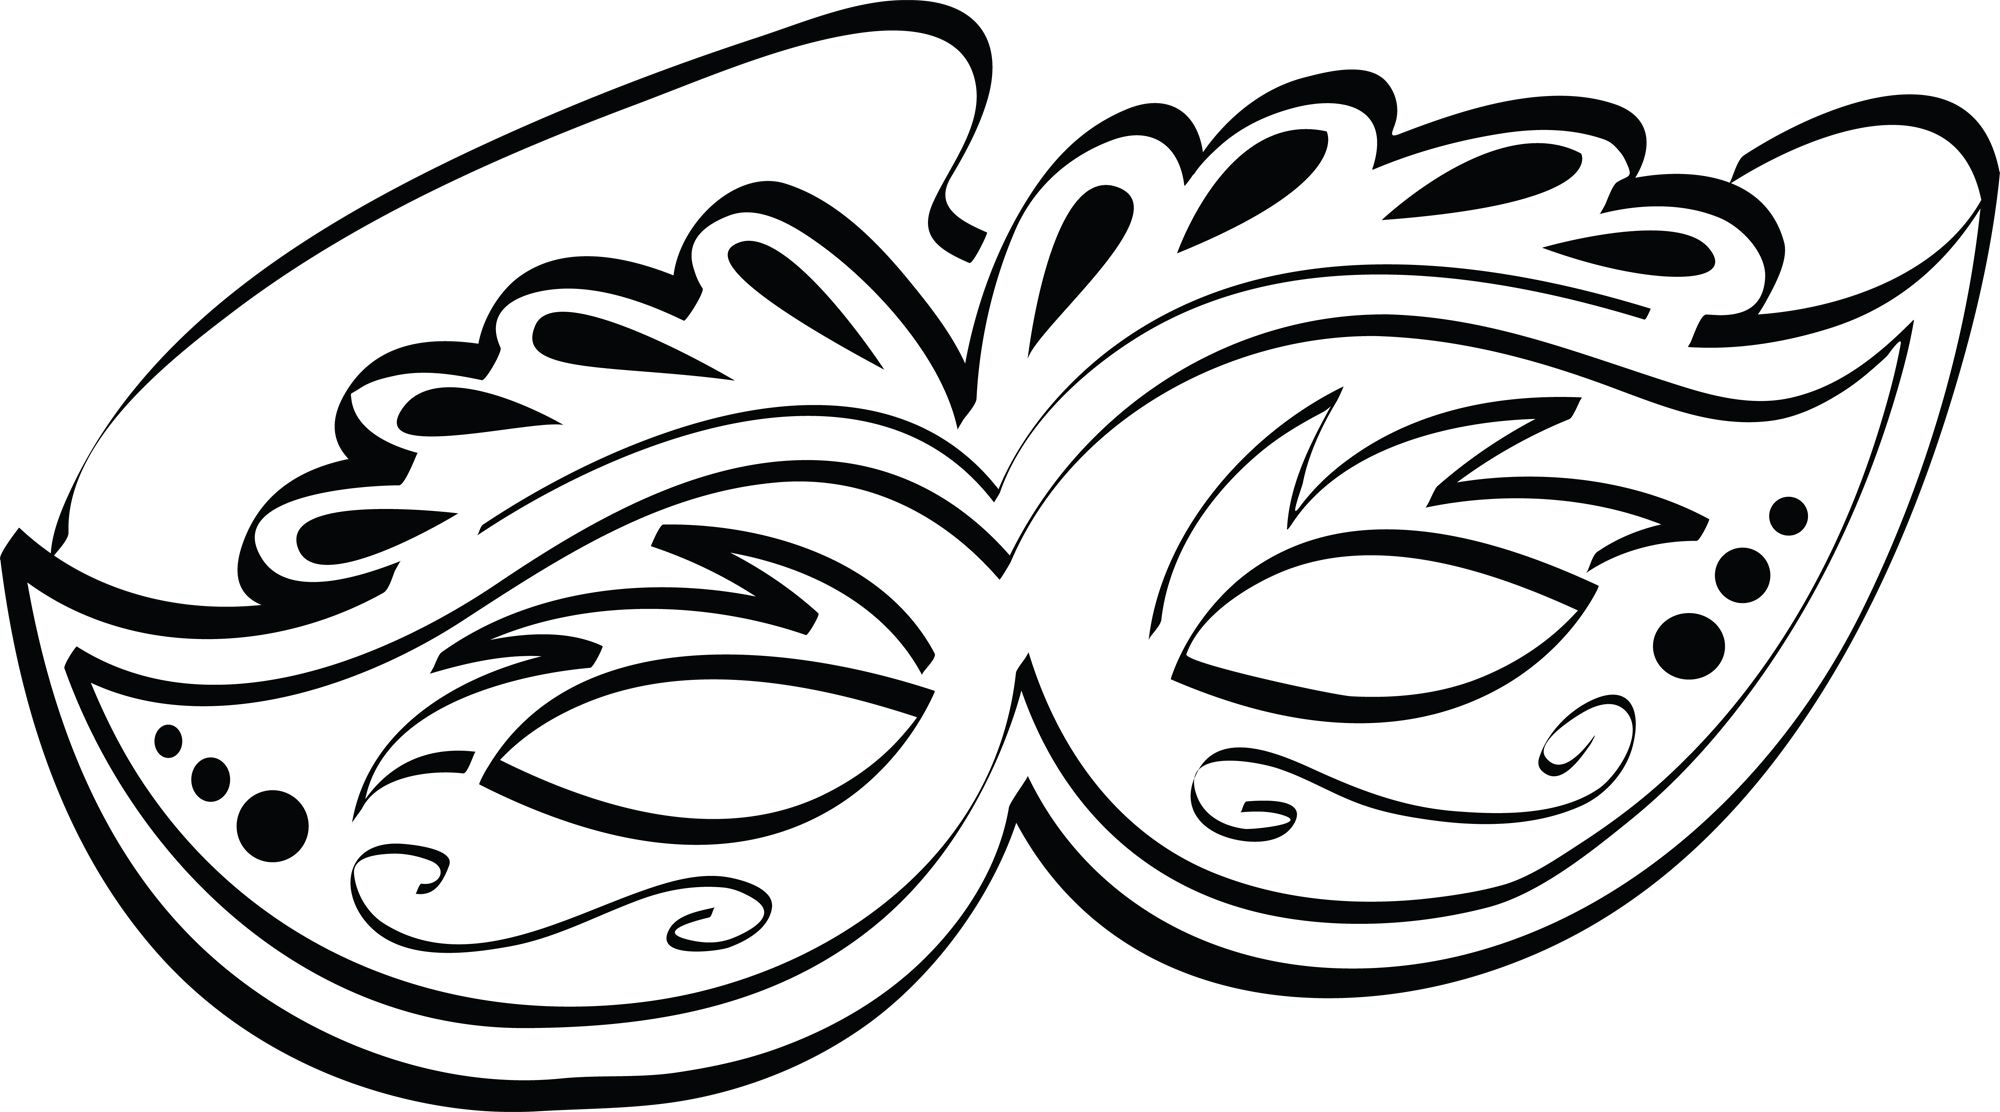 11 best photos of mardi gras mask drawings new orleans mardi